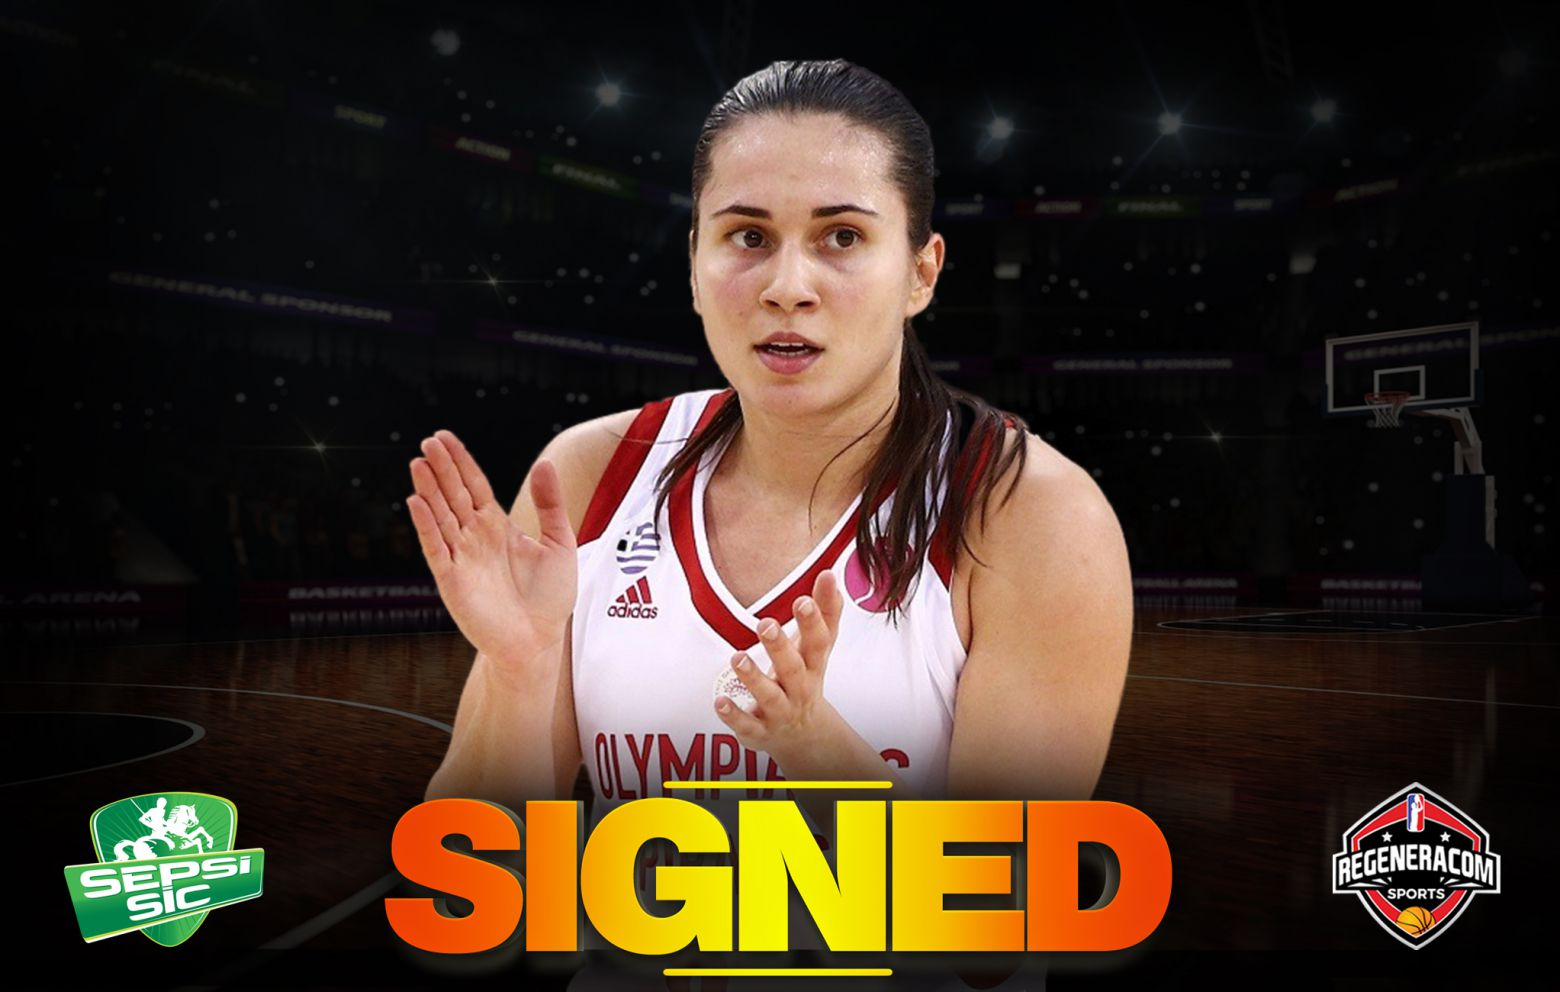 PINELOPI PAVLOPOULOU has signed with Sepsi SIC